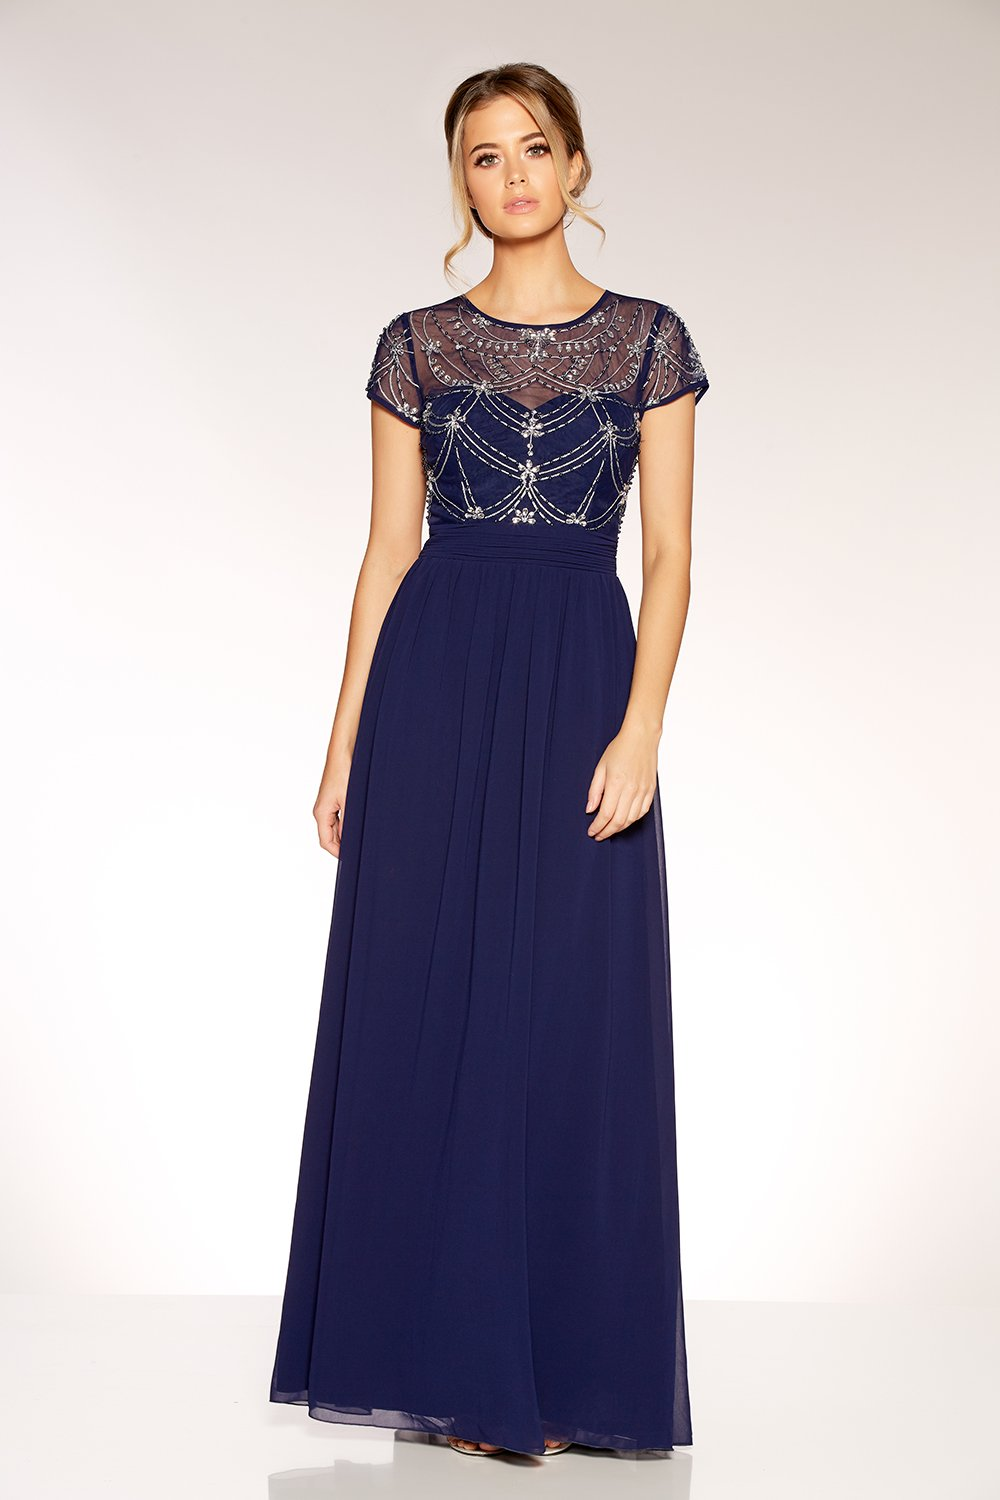 Navy And Silver Embellished Maxi Dress